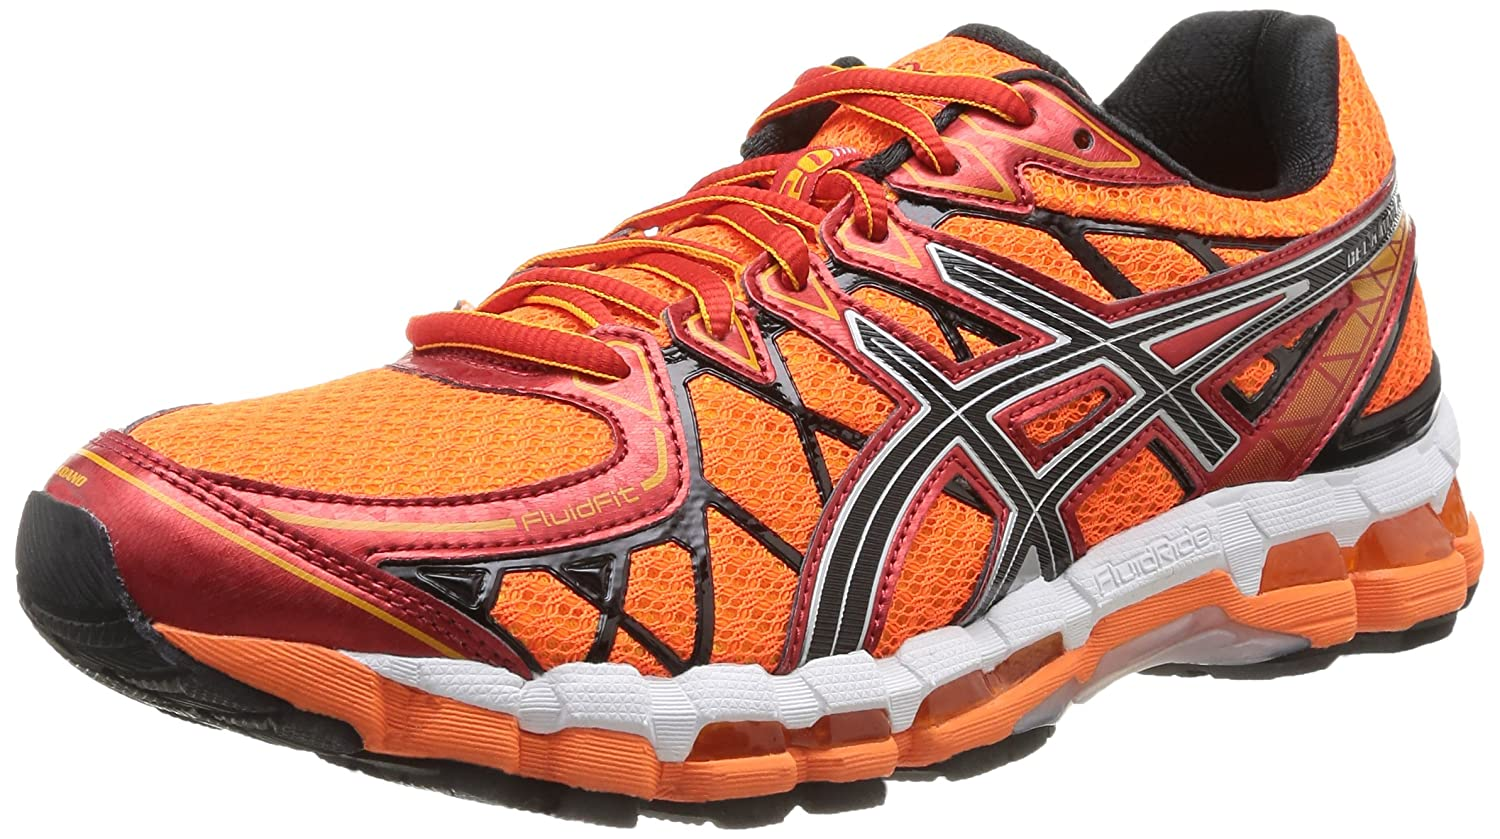 low priced 52bc5 0860e ASICS GEL-KAYANO 20 Running Shoes - 10  Amazon.co.uk  Shoes   Bags